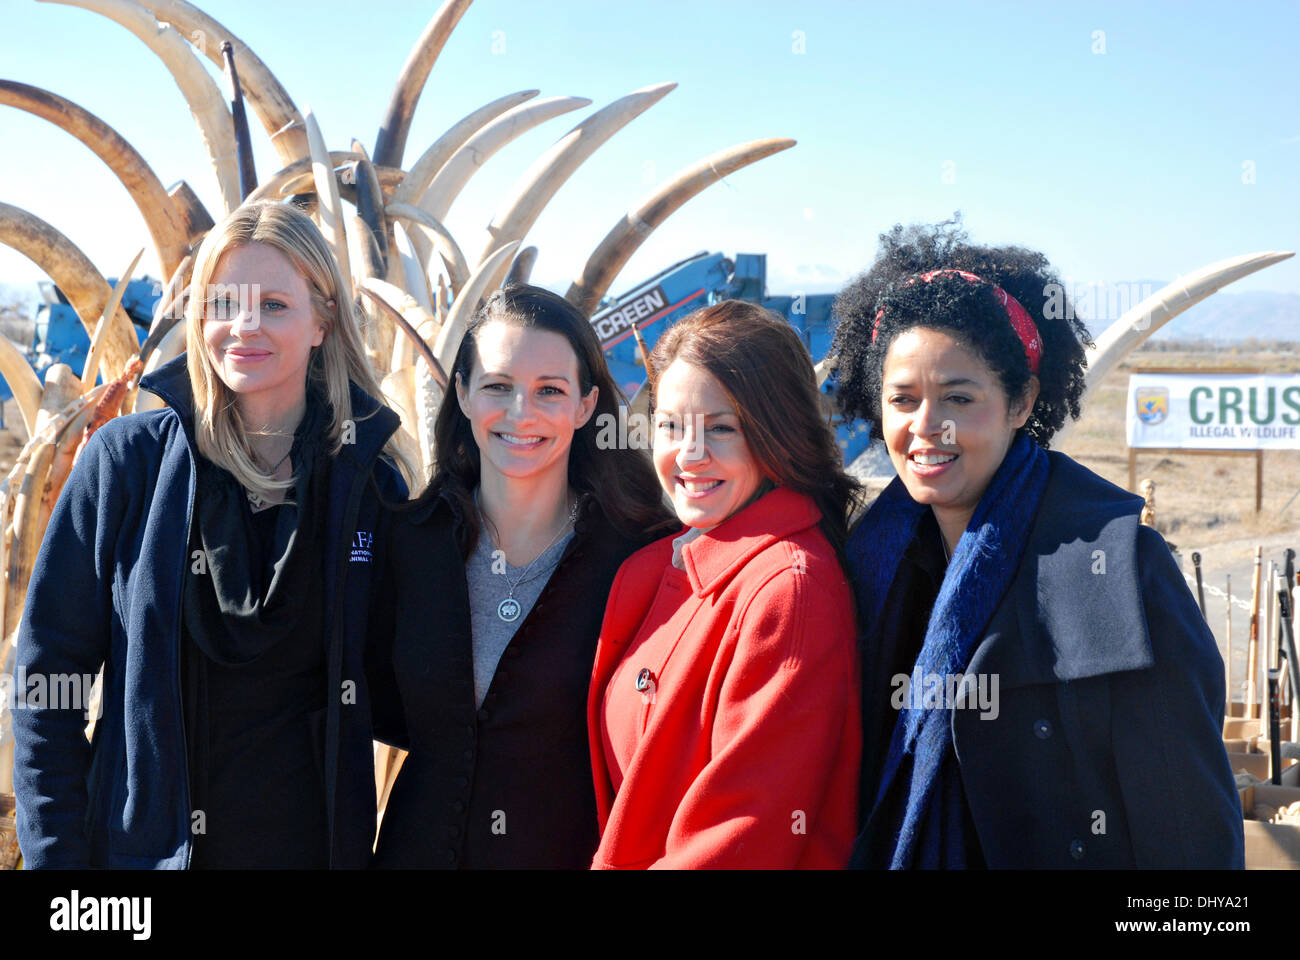 Celebrities Kristin Bauer, left, Kristin Davis, Joely Fisher, and Dr. Paula Kahumbu, CEO of WildlifeDirect, pose in front of six tons of confiscated ivory before is is crushed November 14, 2013 in Commerce City, CO. The ivory stockpile collected over the past 25 years through smuggling busts and border confiscations was fed through a stone crusher and destroyed to discourage poaching. - Stock Image